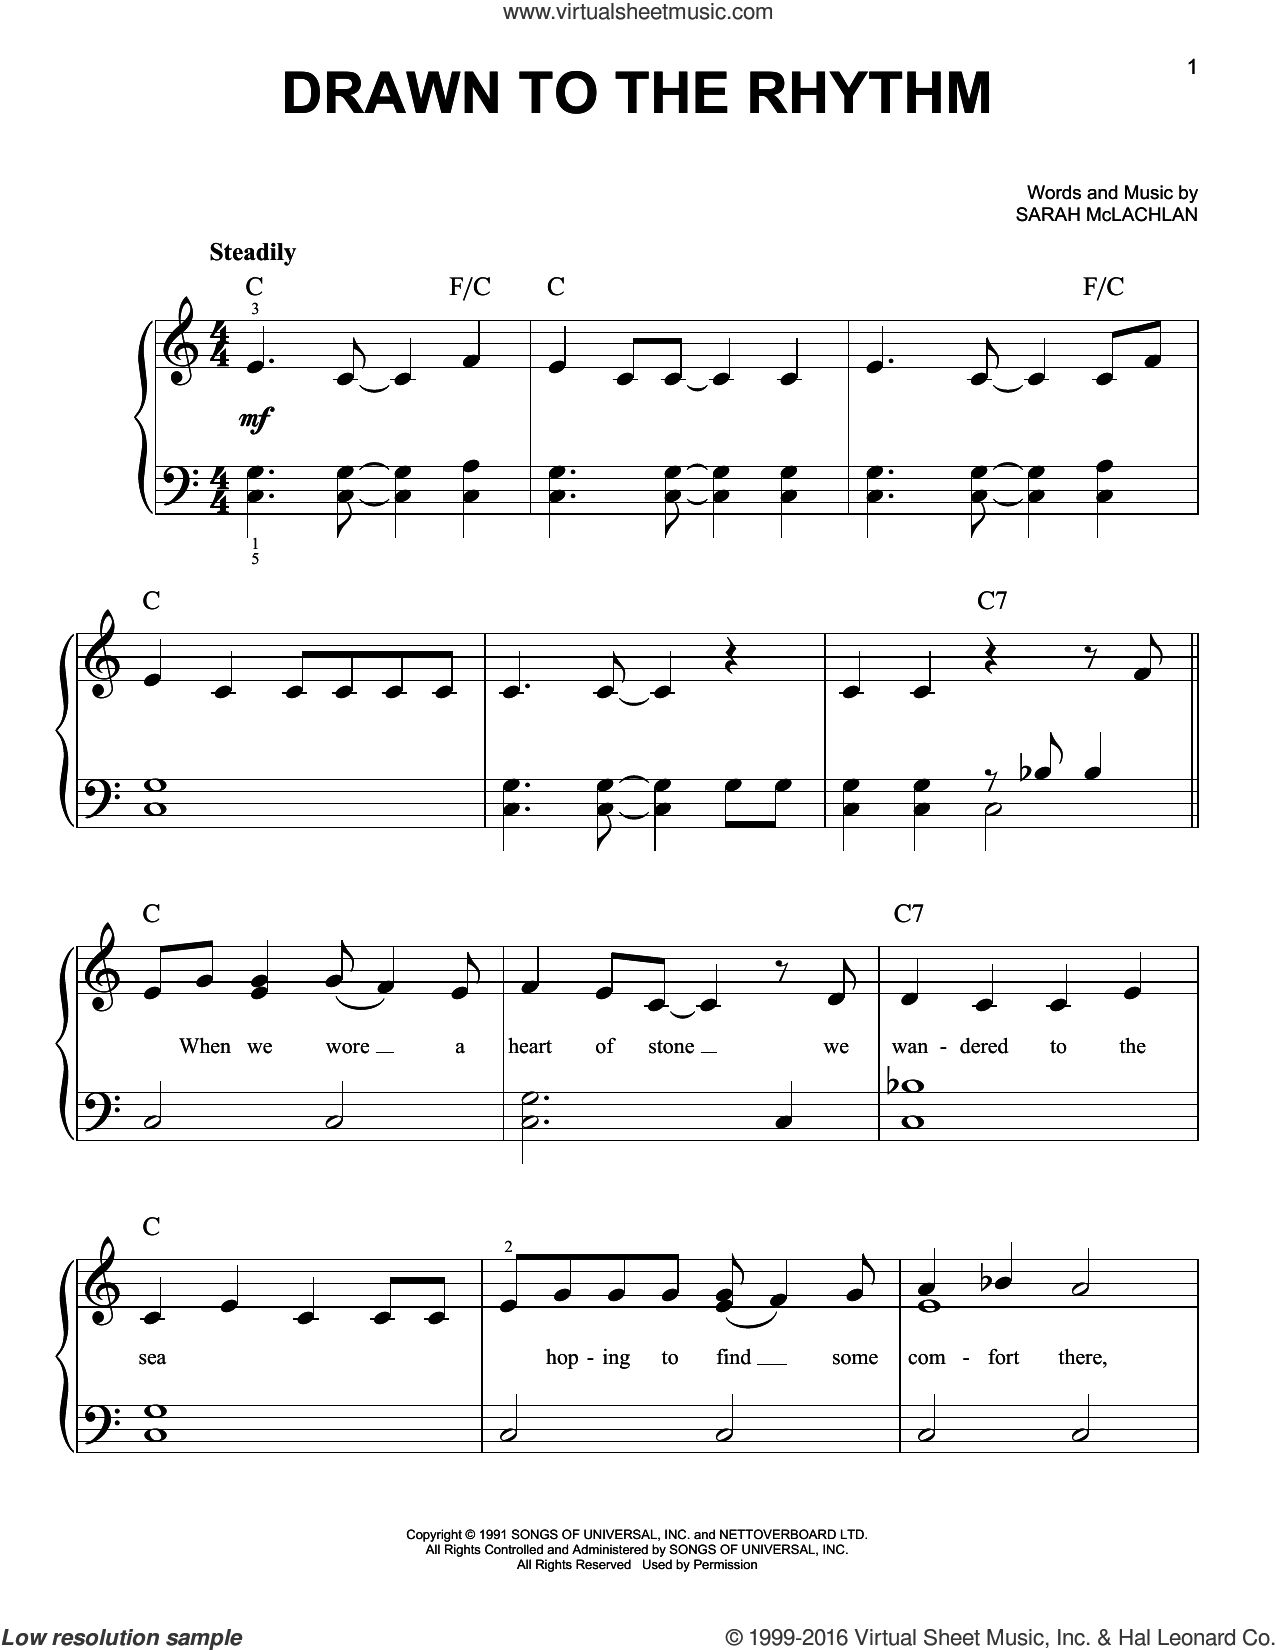 Drawn To The Rhythm sheet music for piano solo by Sarah McLachlan. Score Image Preview.